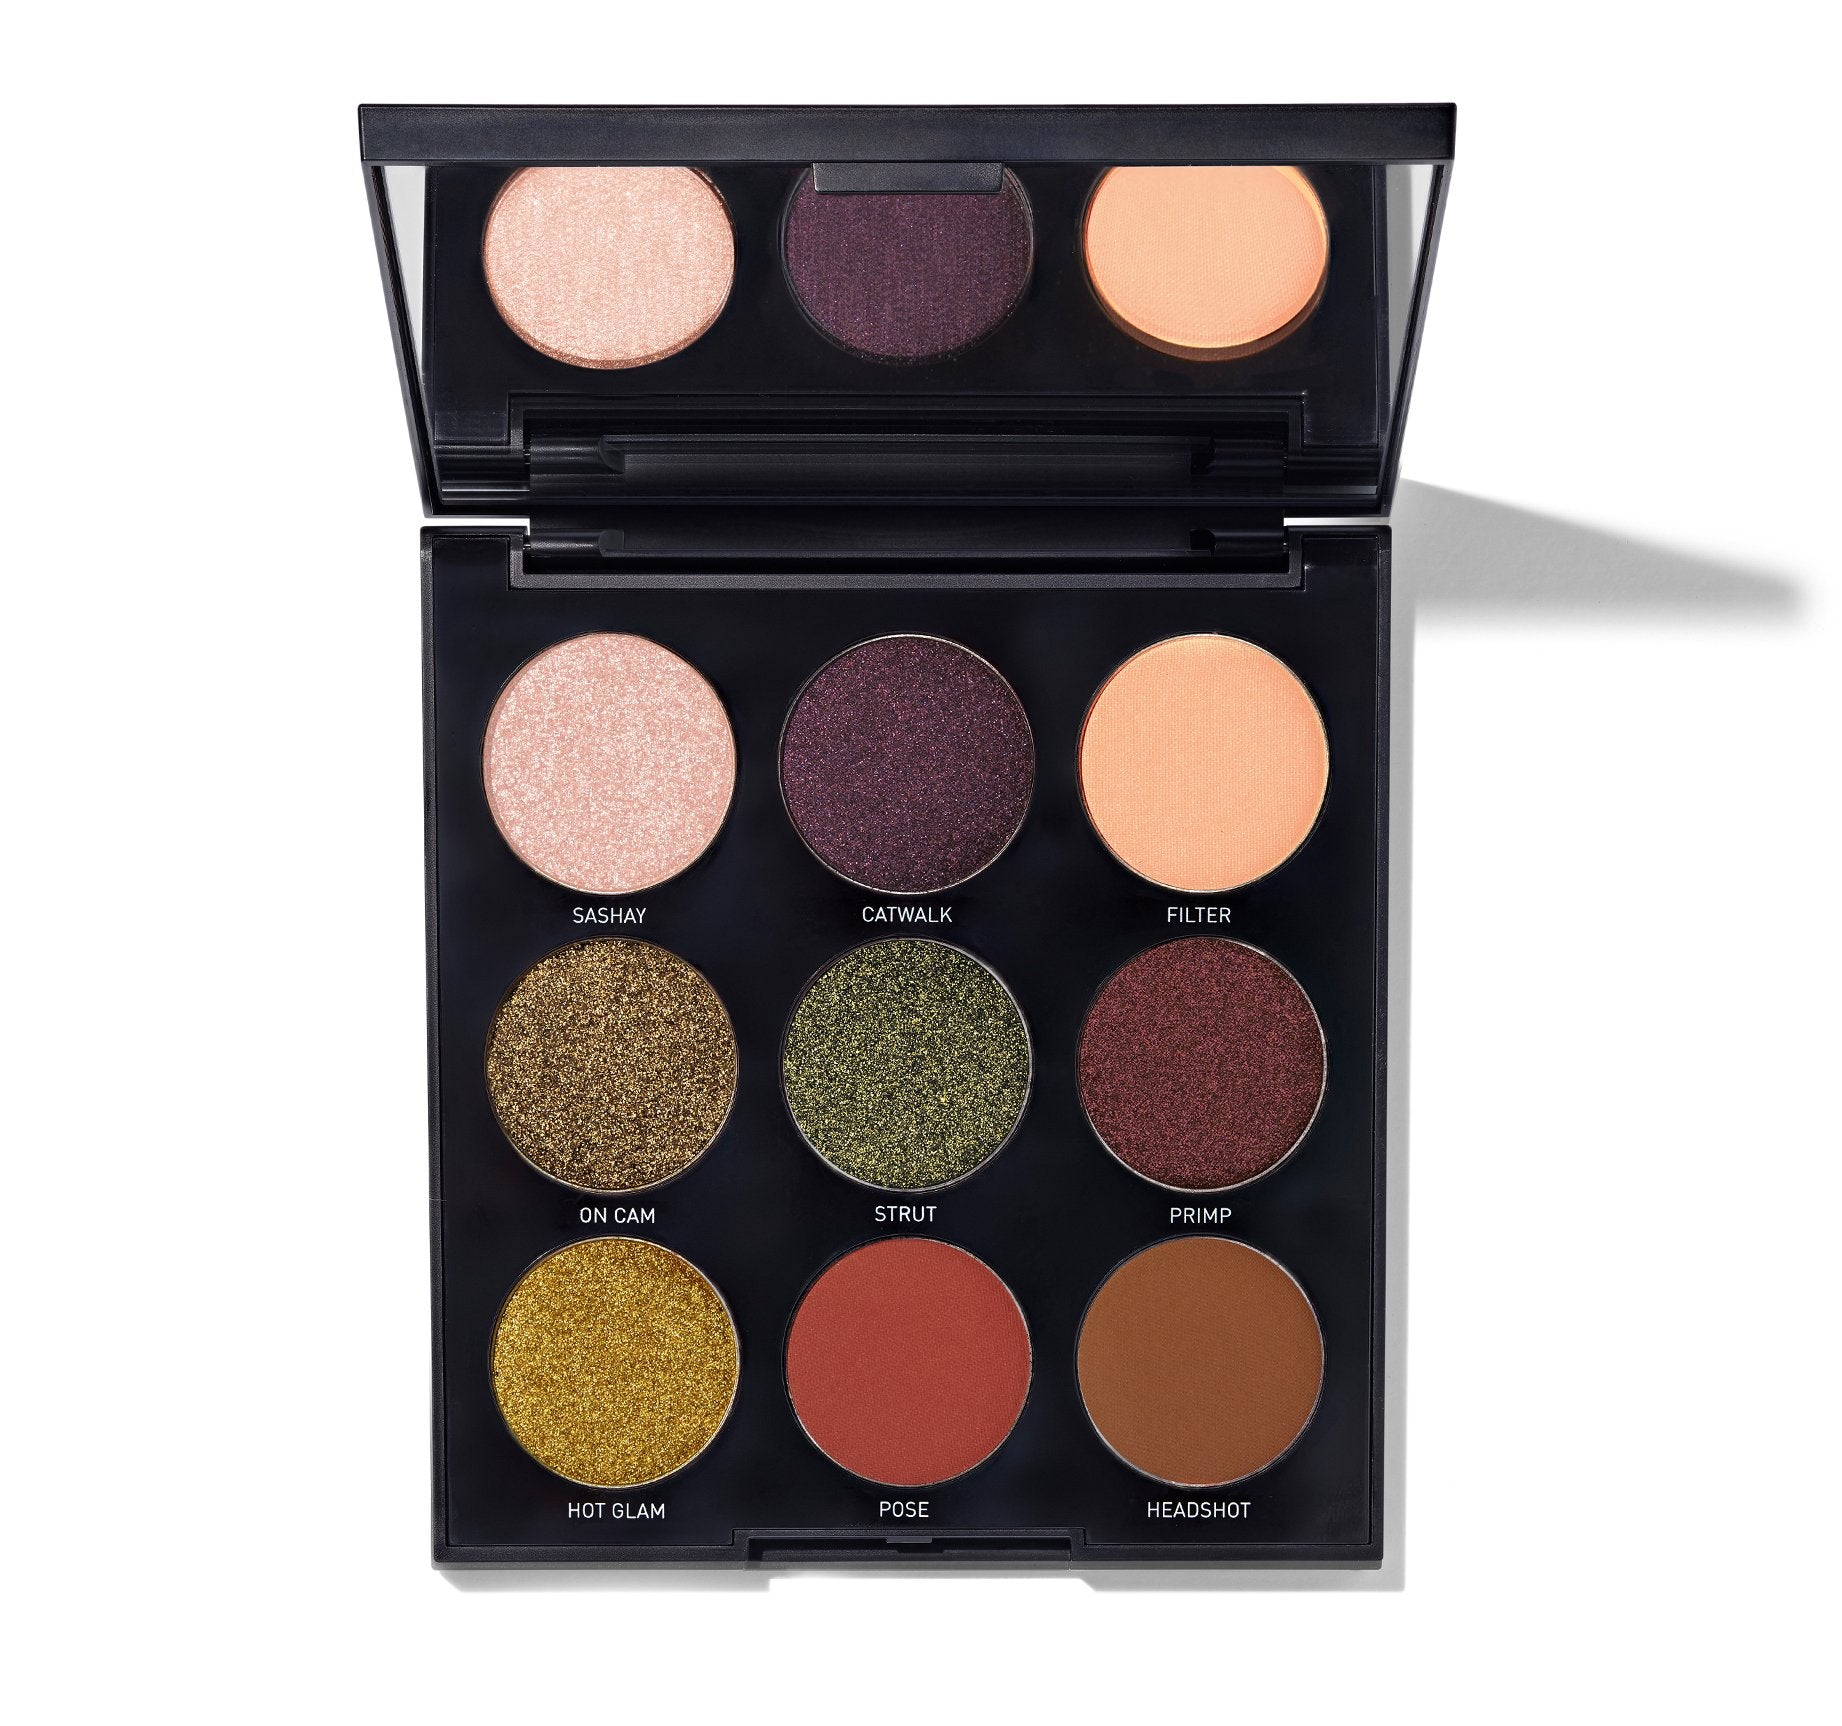 9G OH MY GORG ARTISTRY PALETTE, view larger image